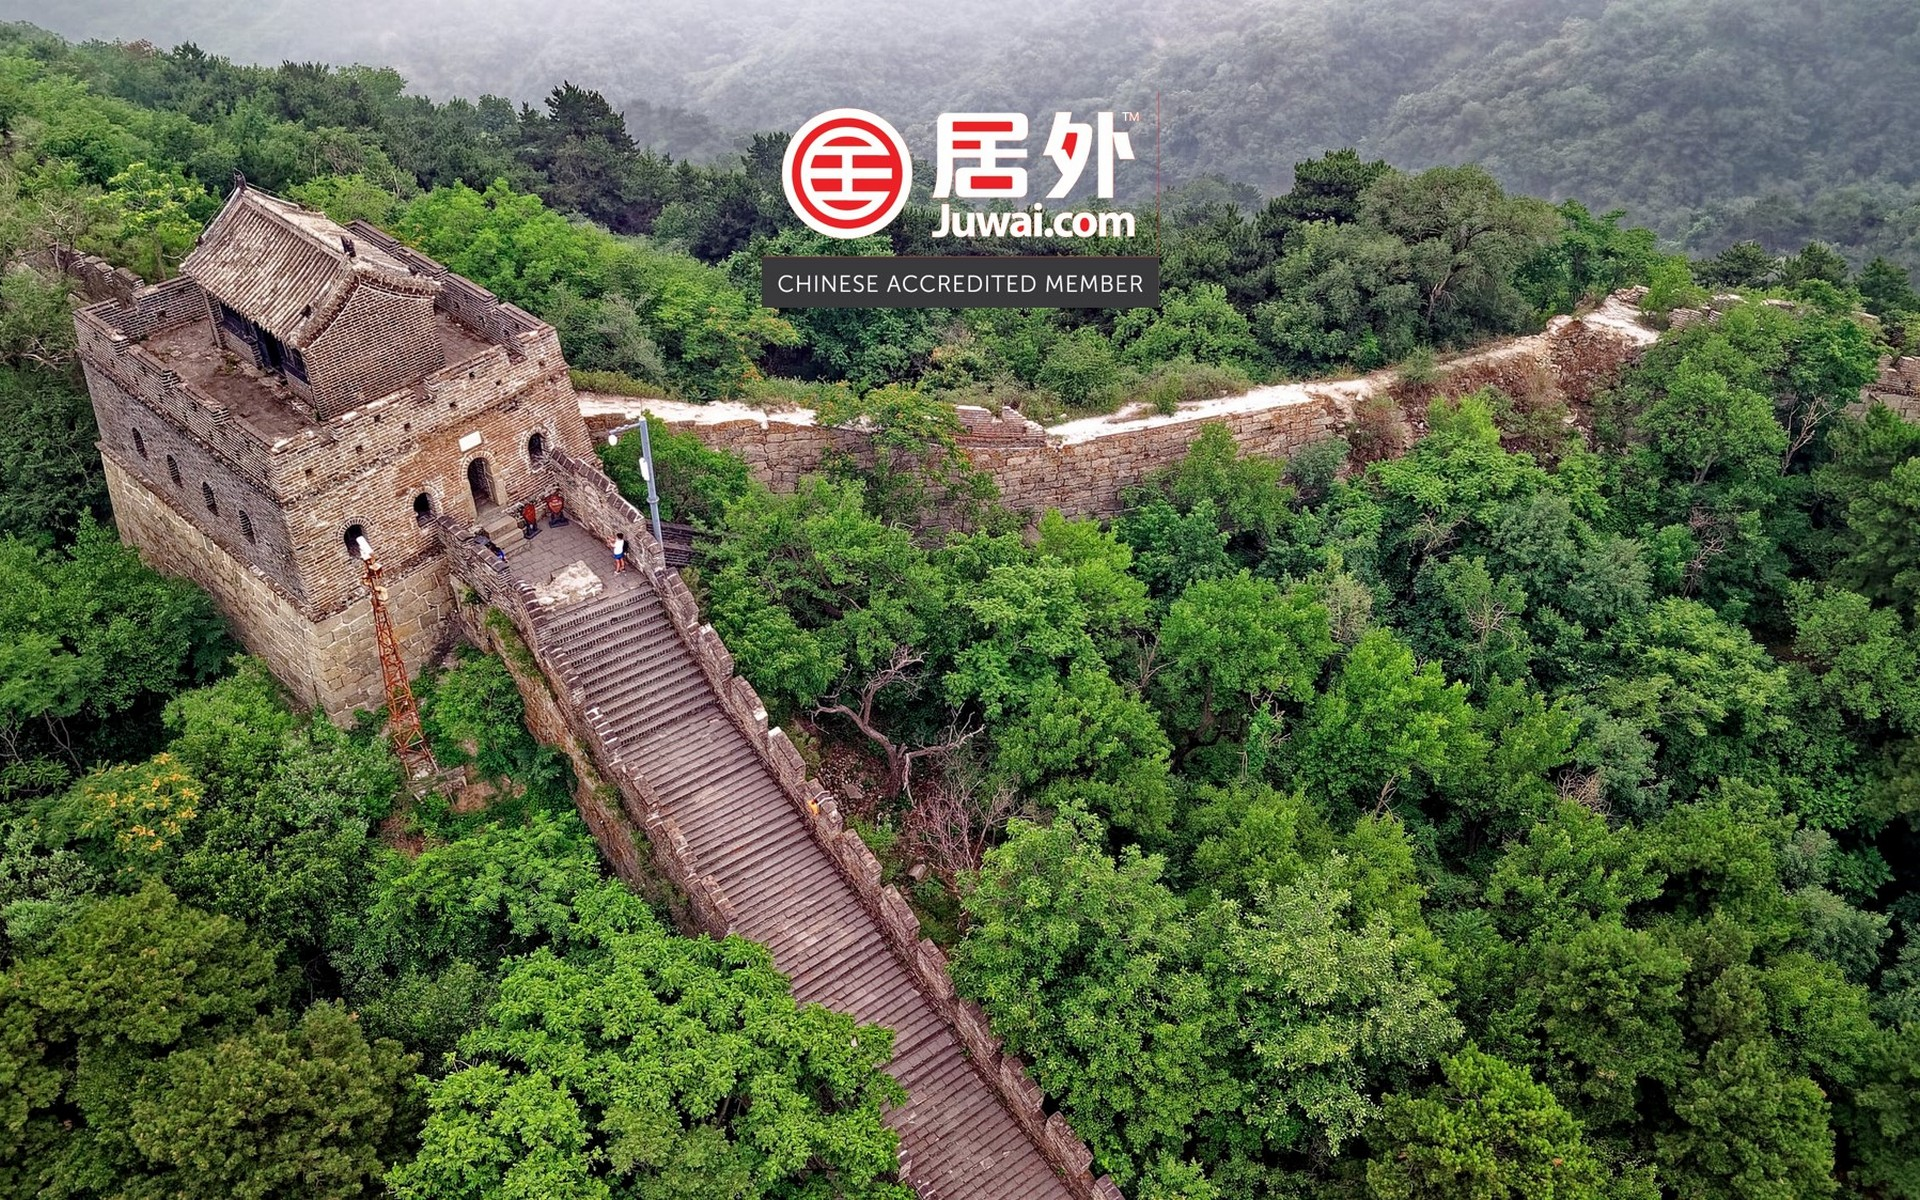 Great Wall of China & Juwai.com